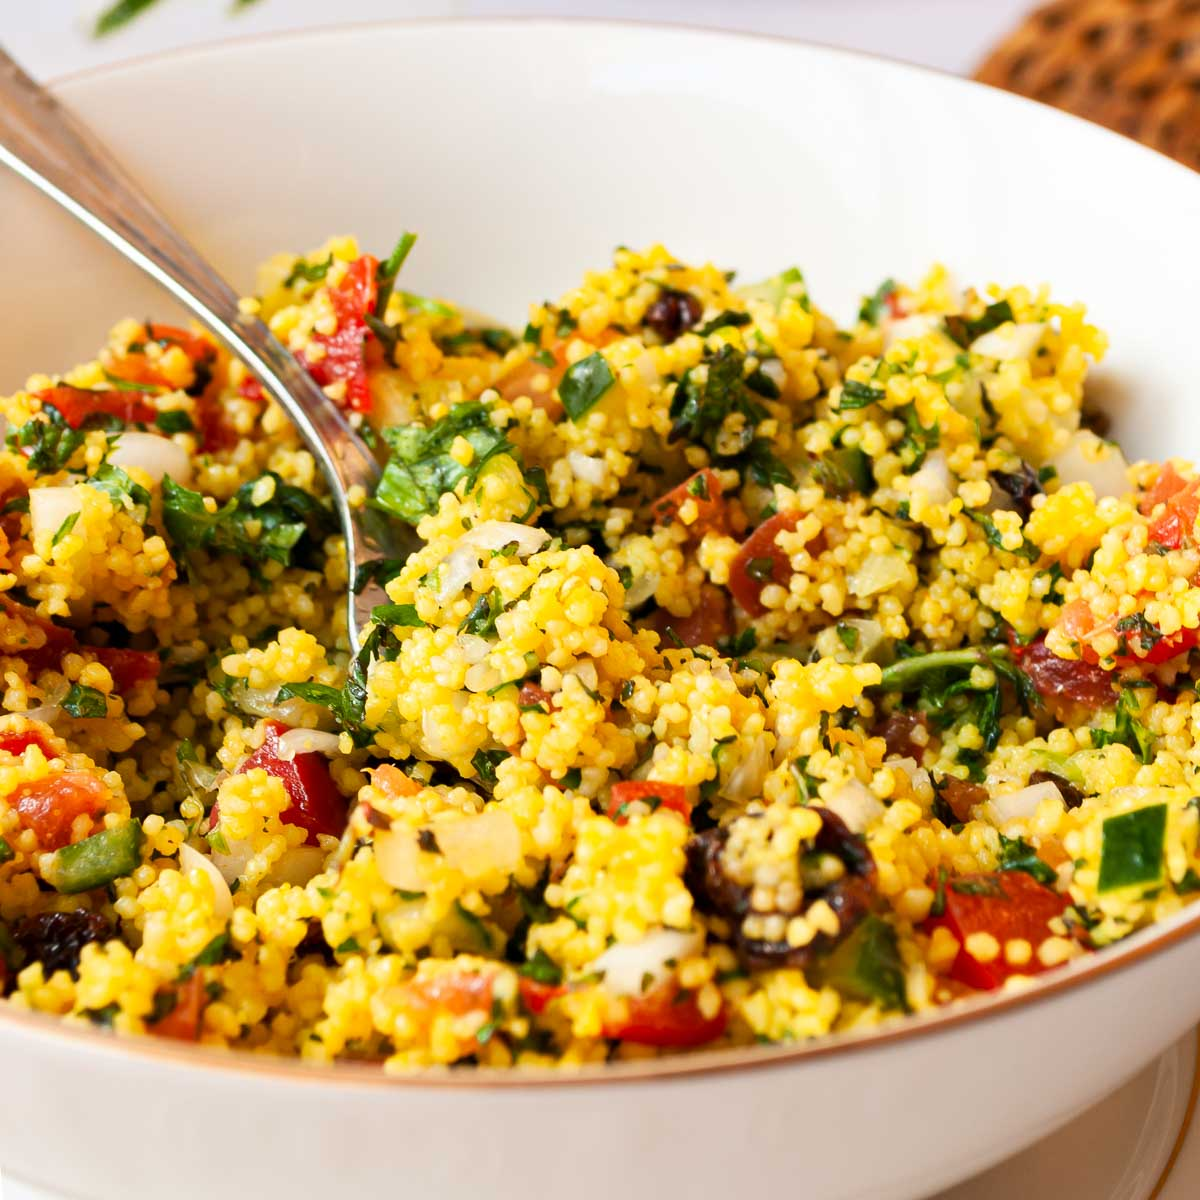 Bowl of couscous salad with cucumber and tomato